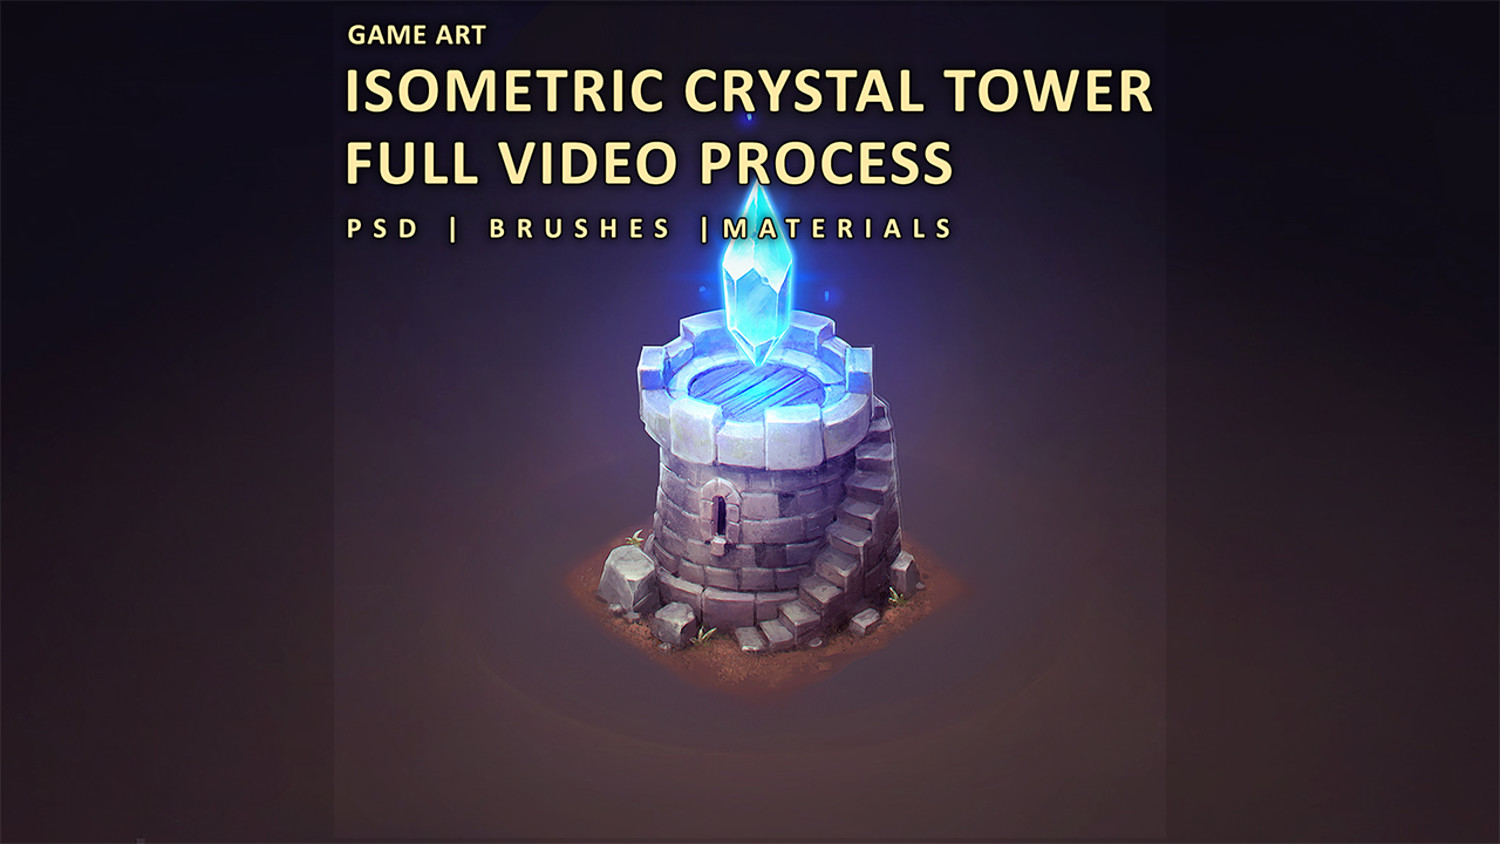 ISOMETRIC CRYSTAL TOWER